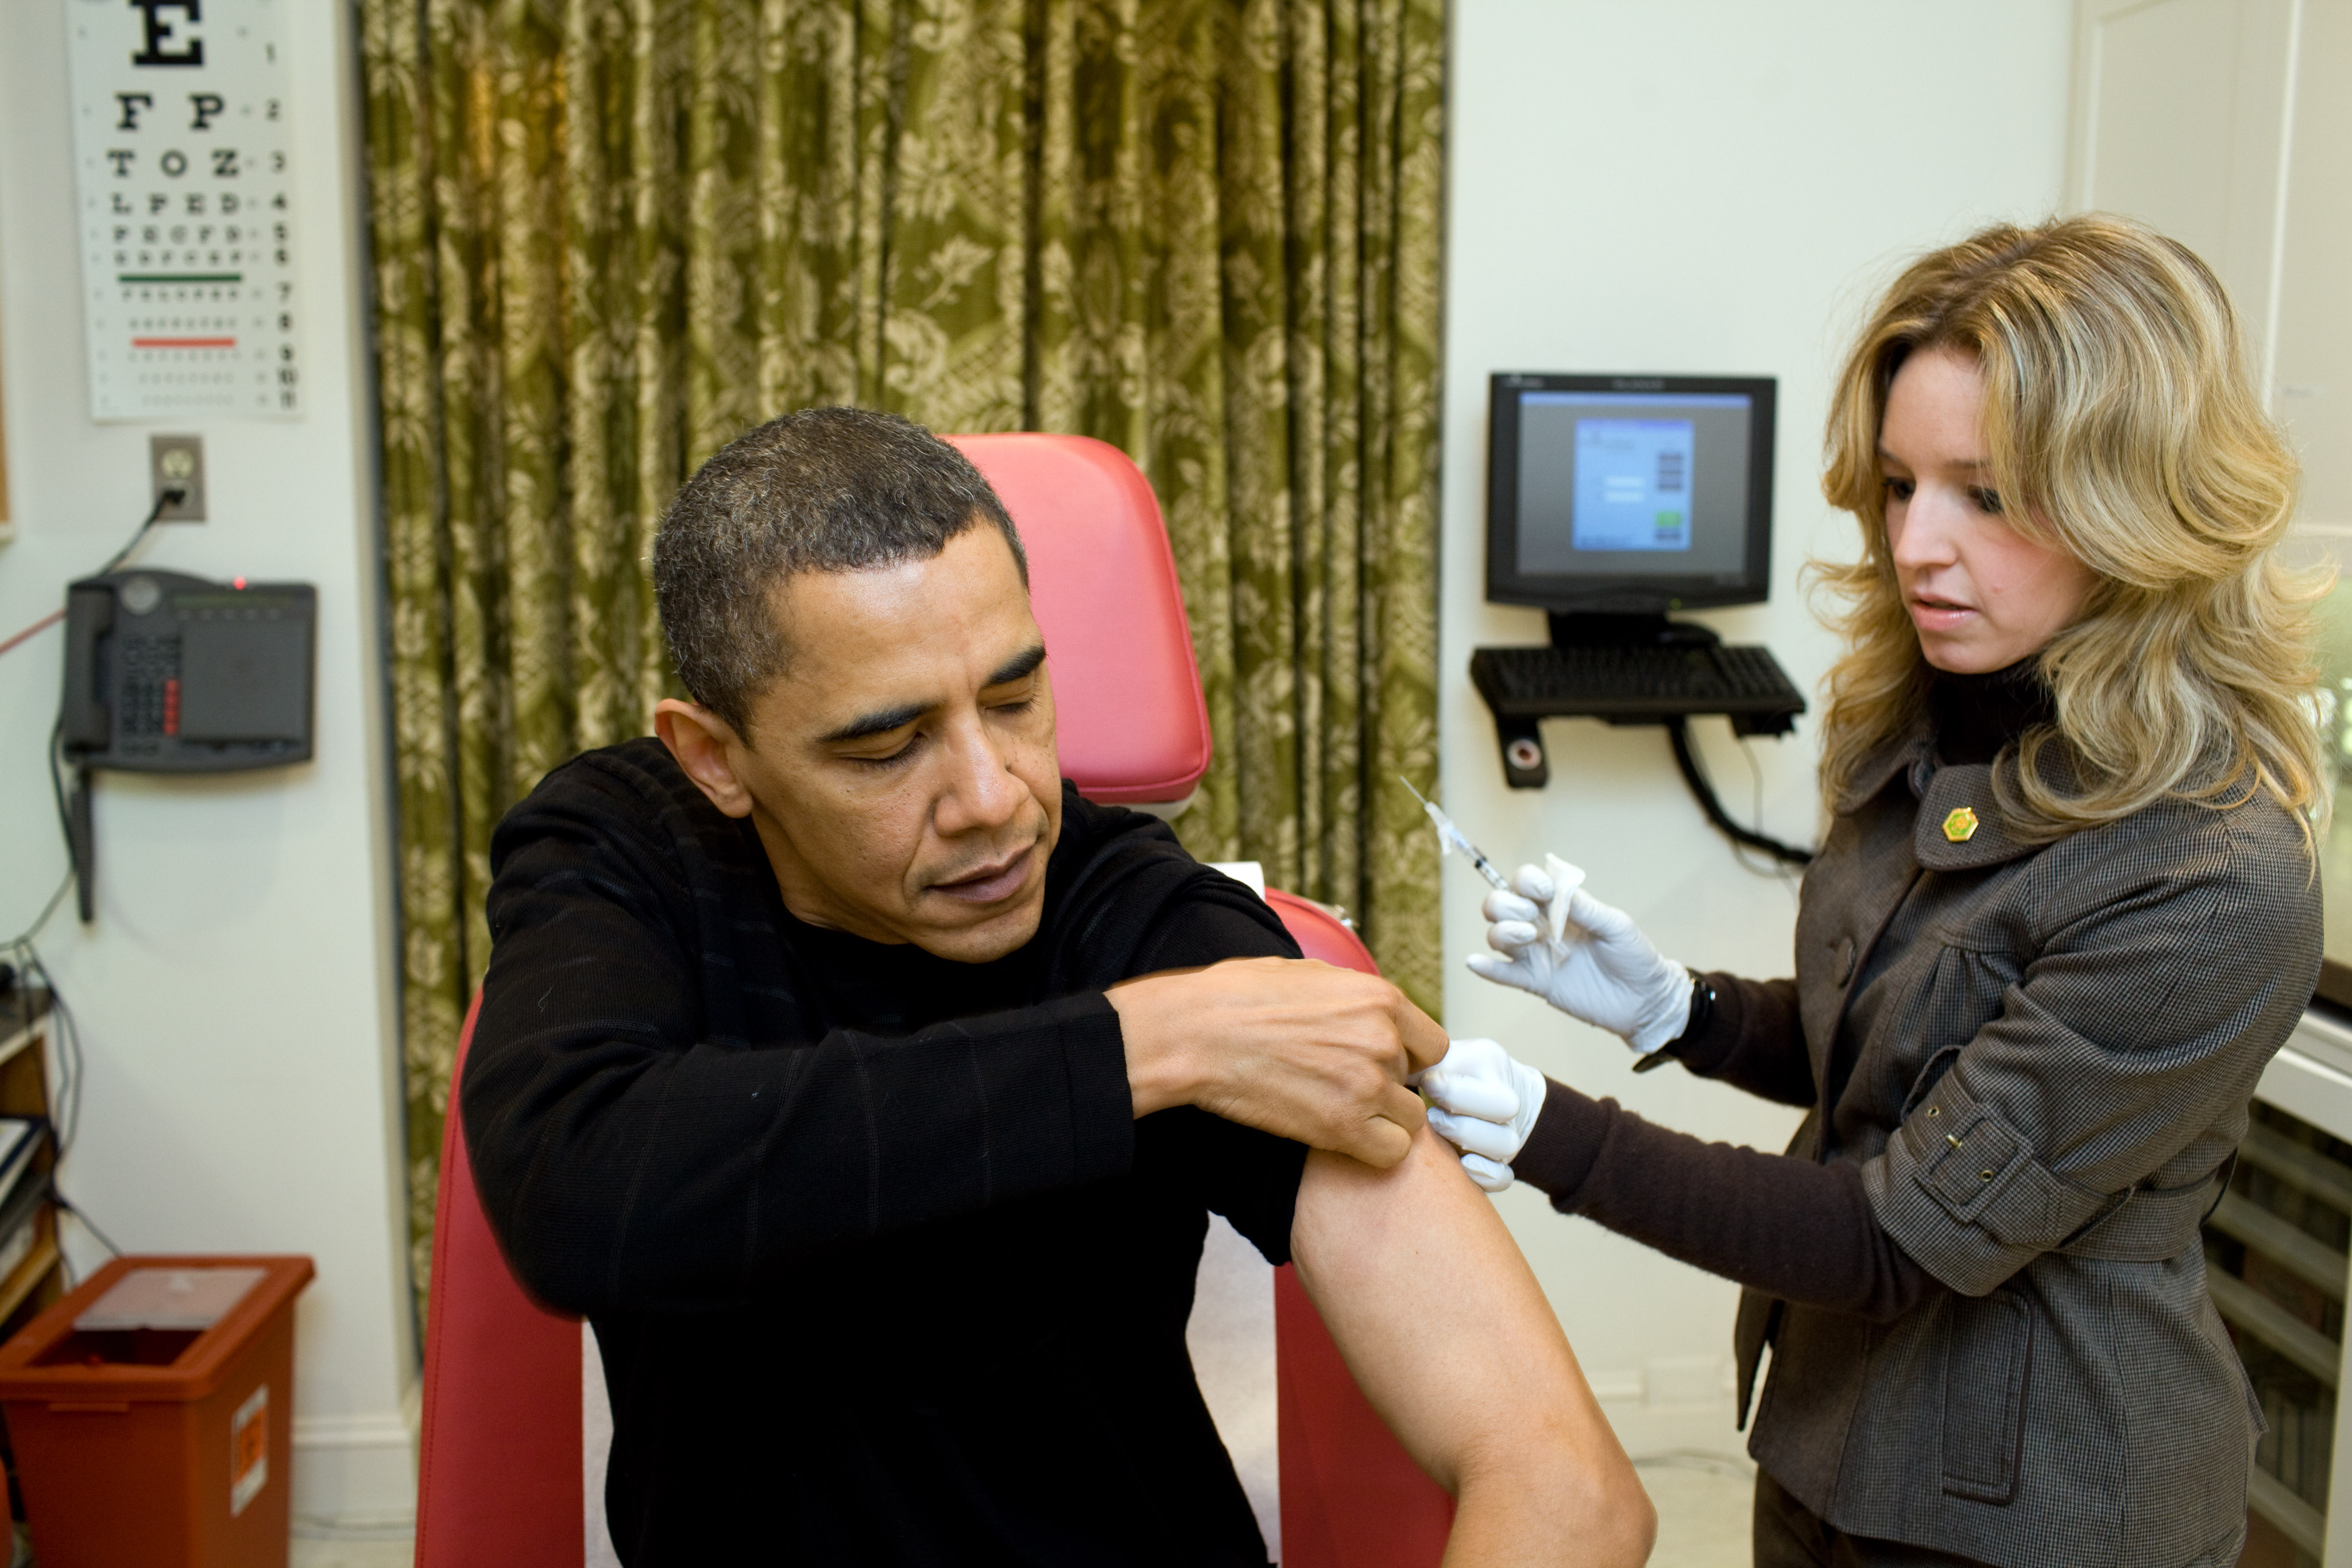 White House nurse prepares to administer the H1N1 vaccine to President Barack Obama (Pete Souza/White House via Getty Images)